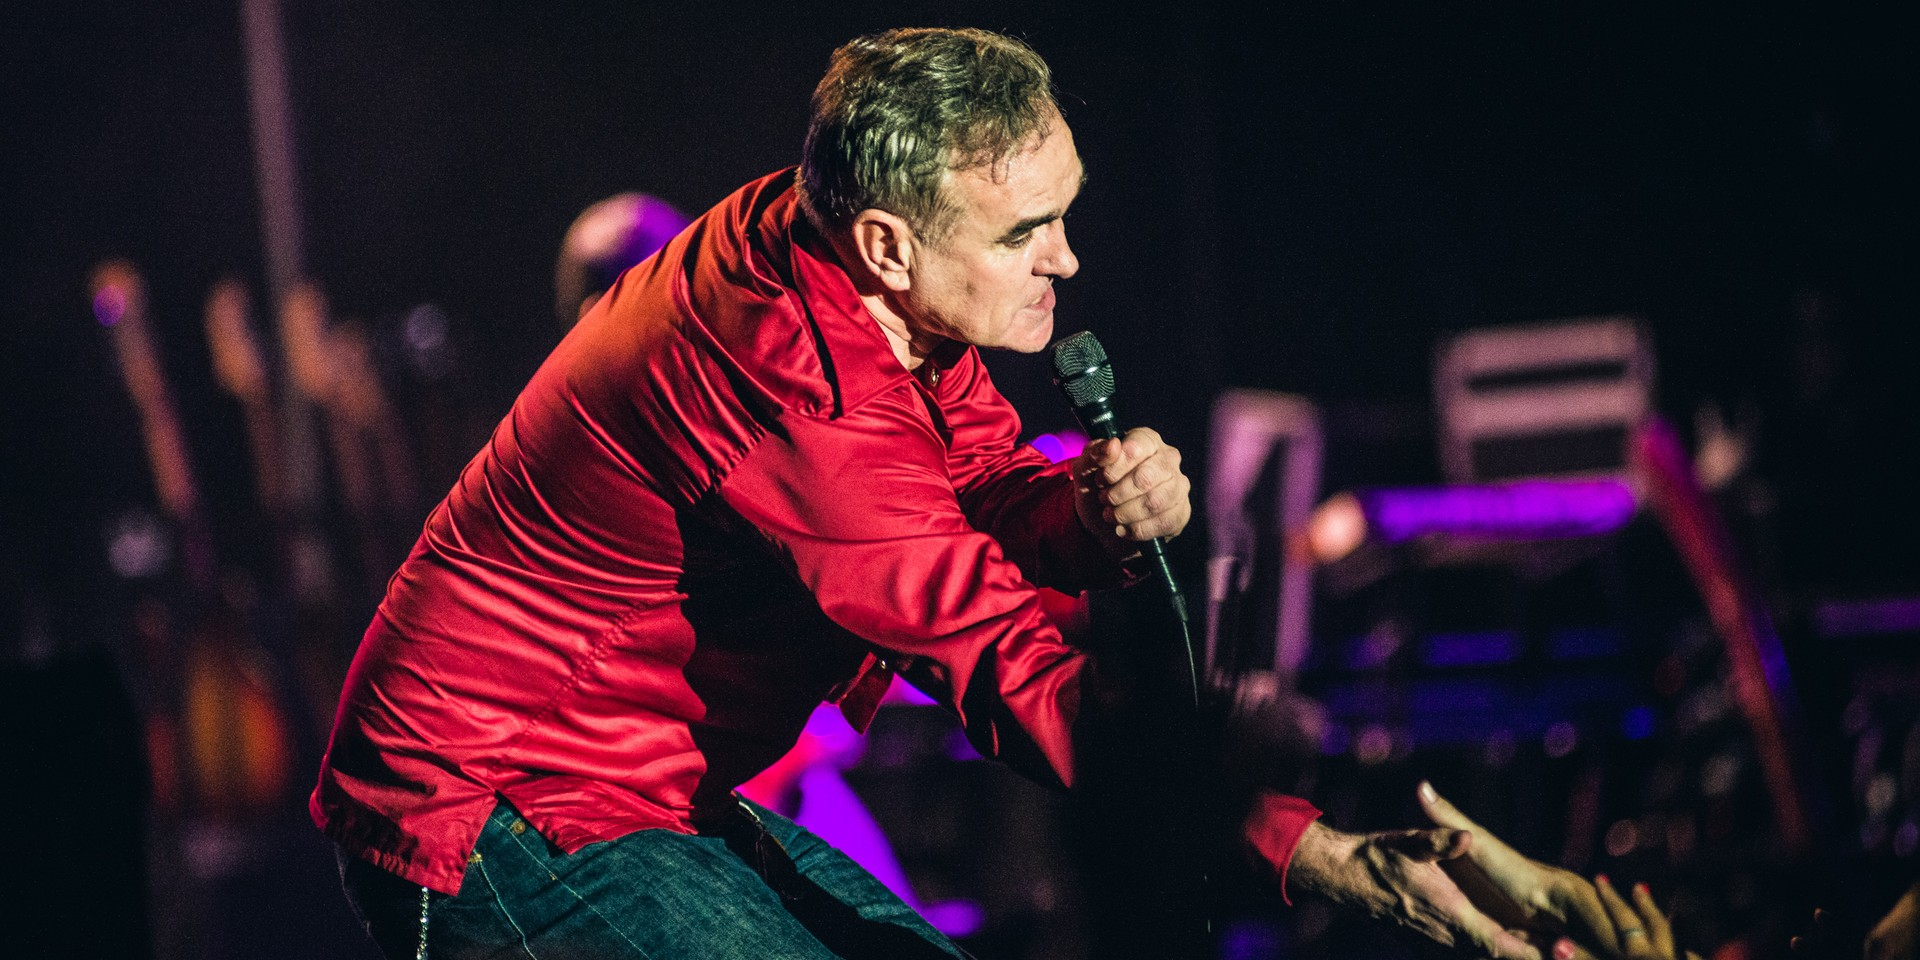 GIG REPORT: Morrissey settles in on solo legacy with second Singapore show